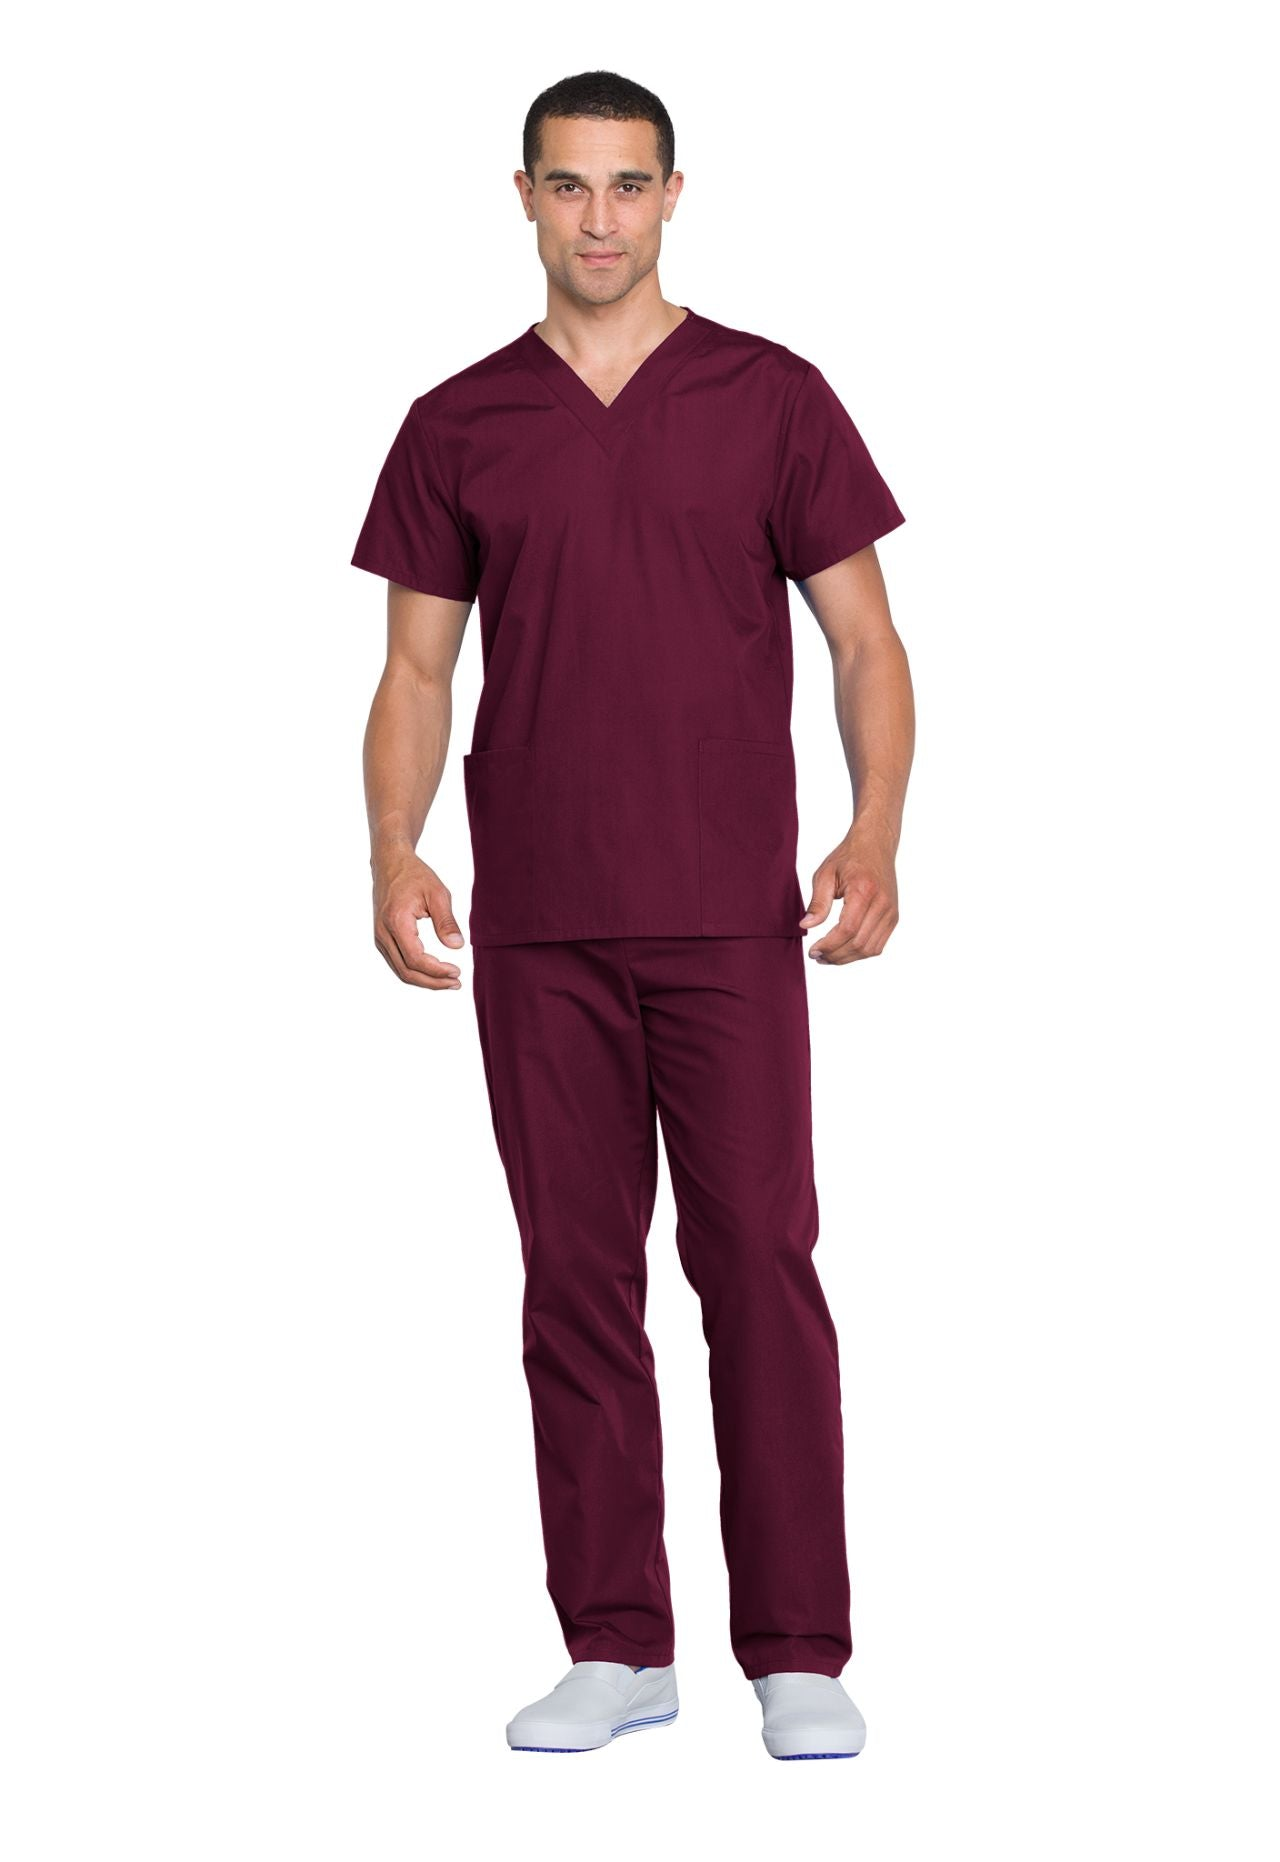 Wine - Cherokee Workwear Originals Unisex Top and Pant Set